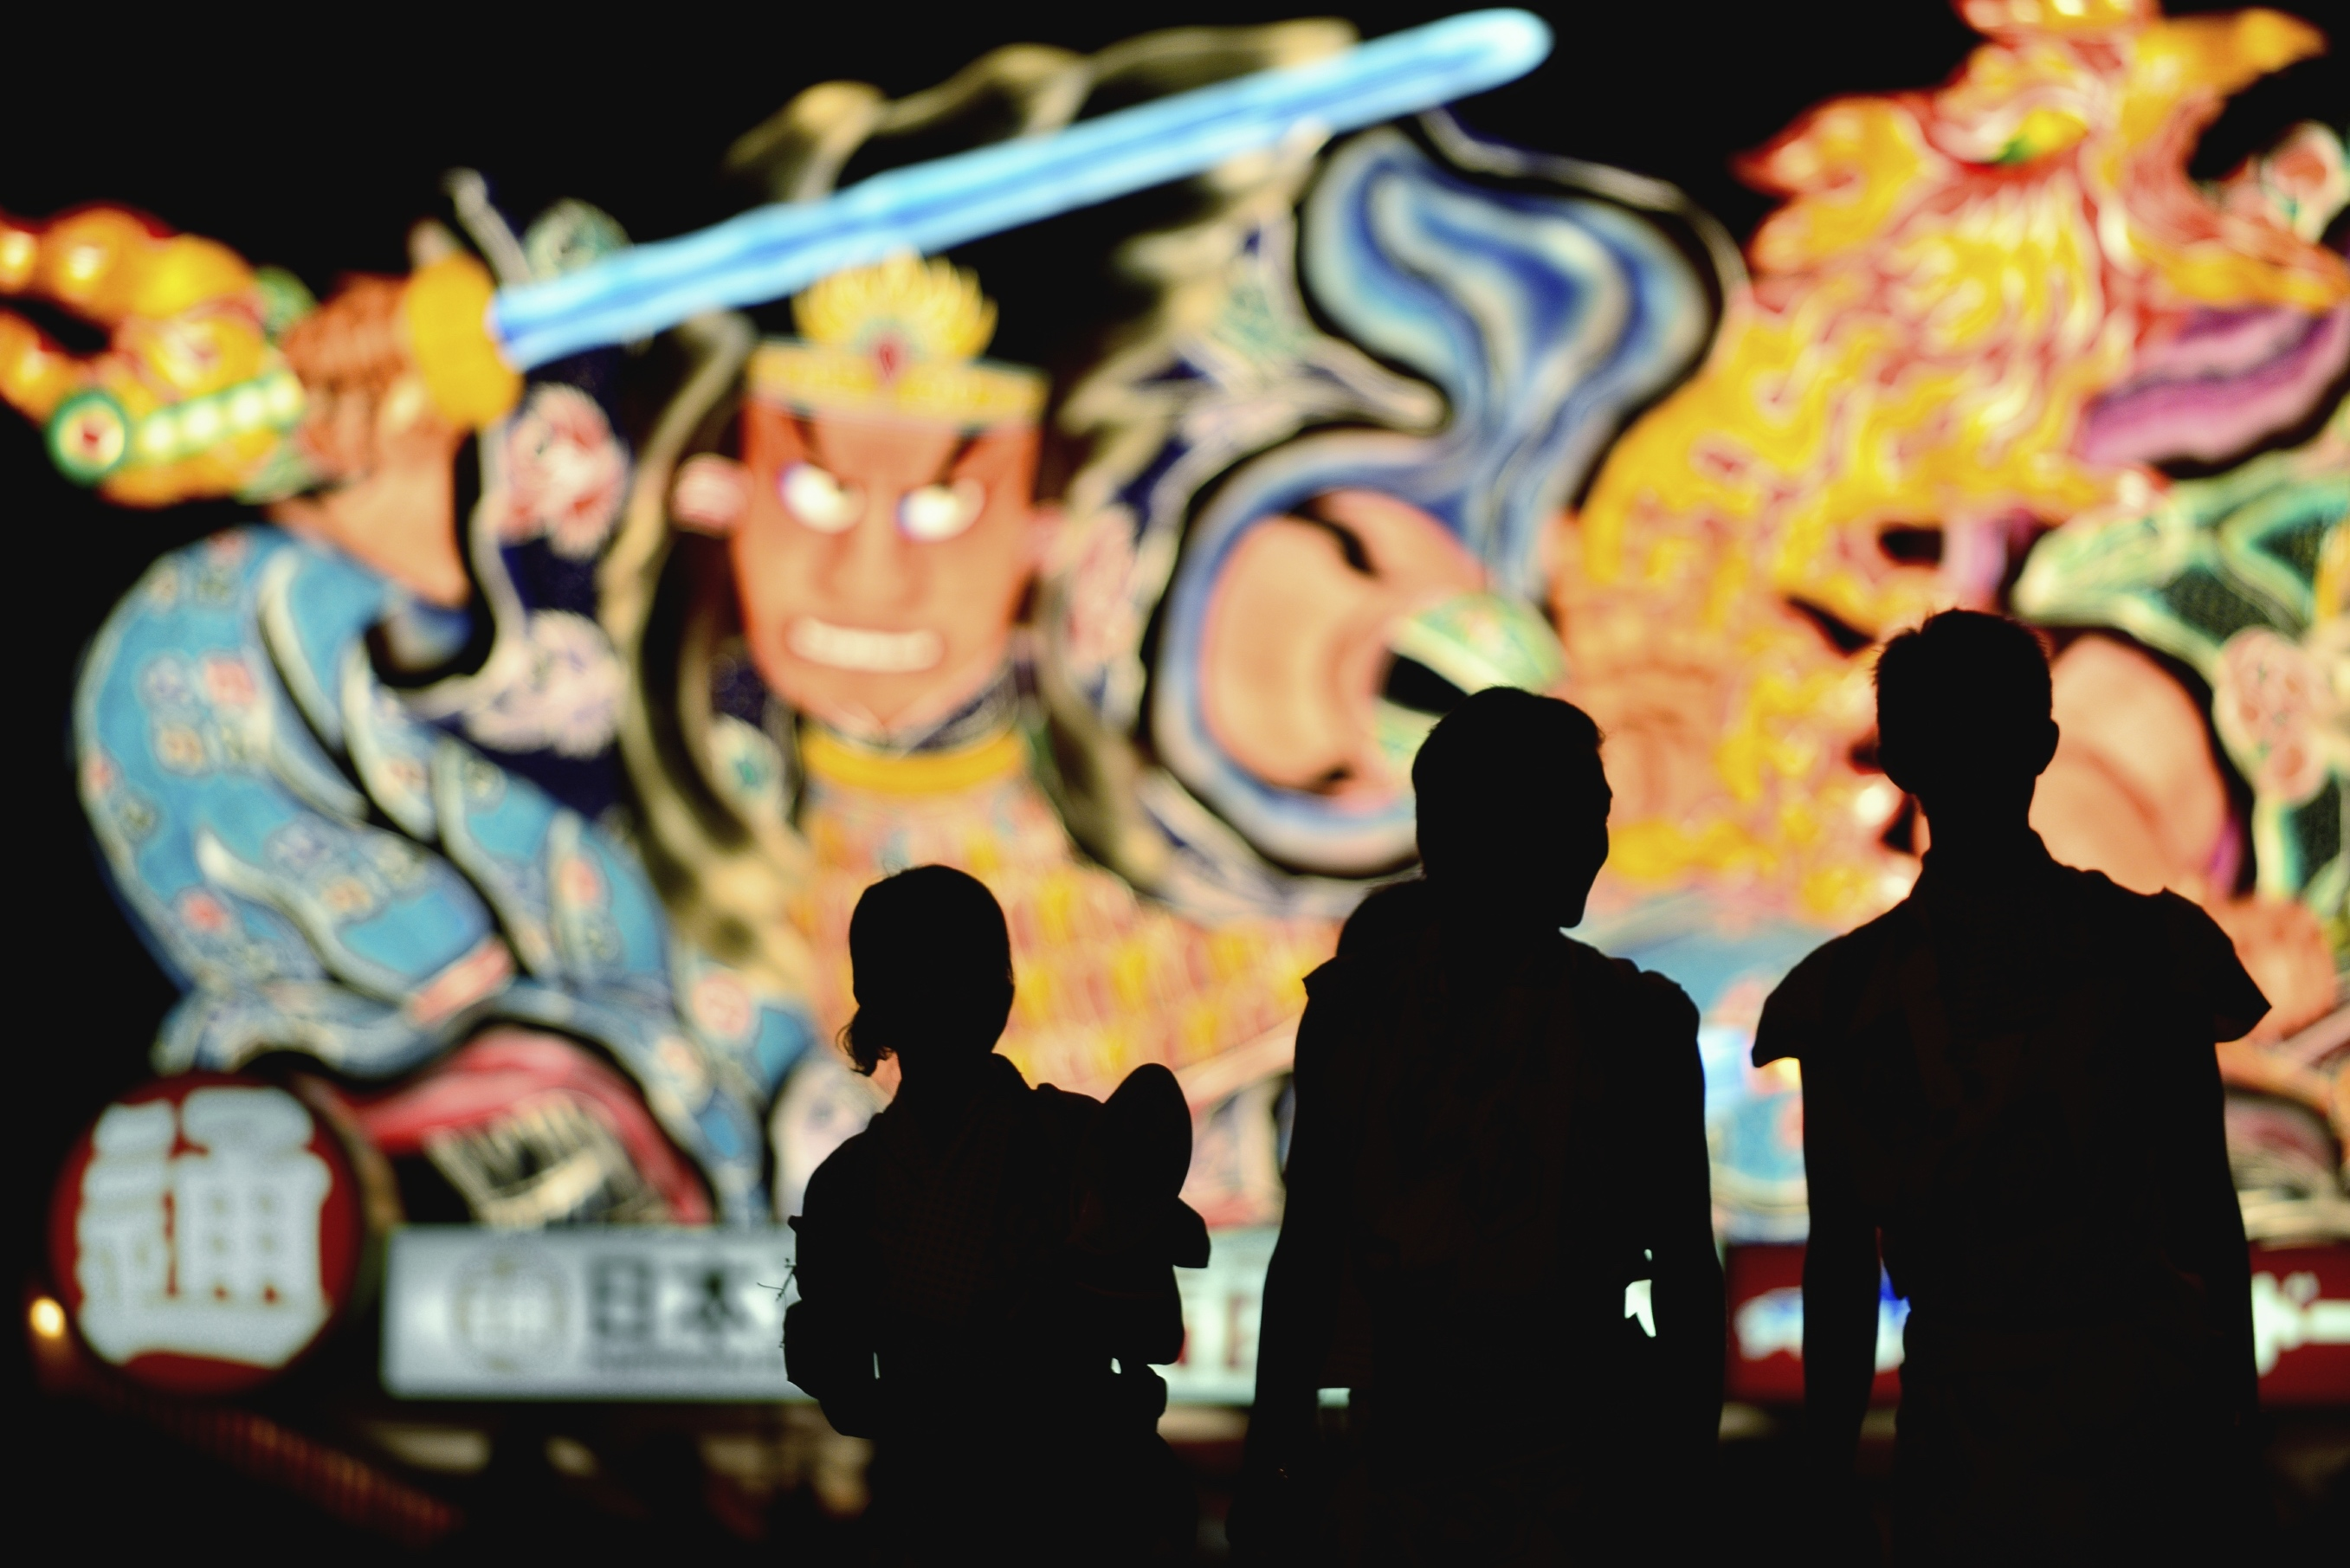 The summer Nebuta festival in Aomori city features giant floats parading through the street at nighttime.